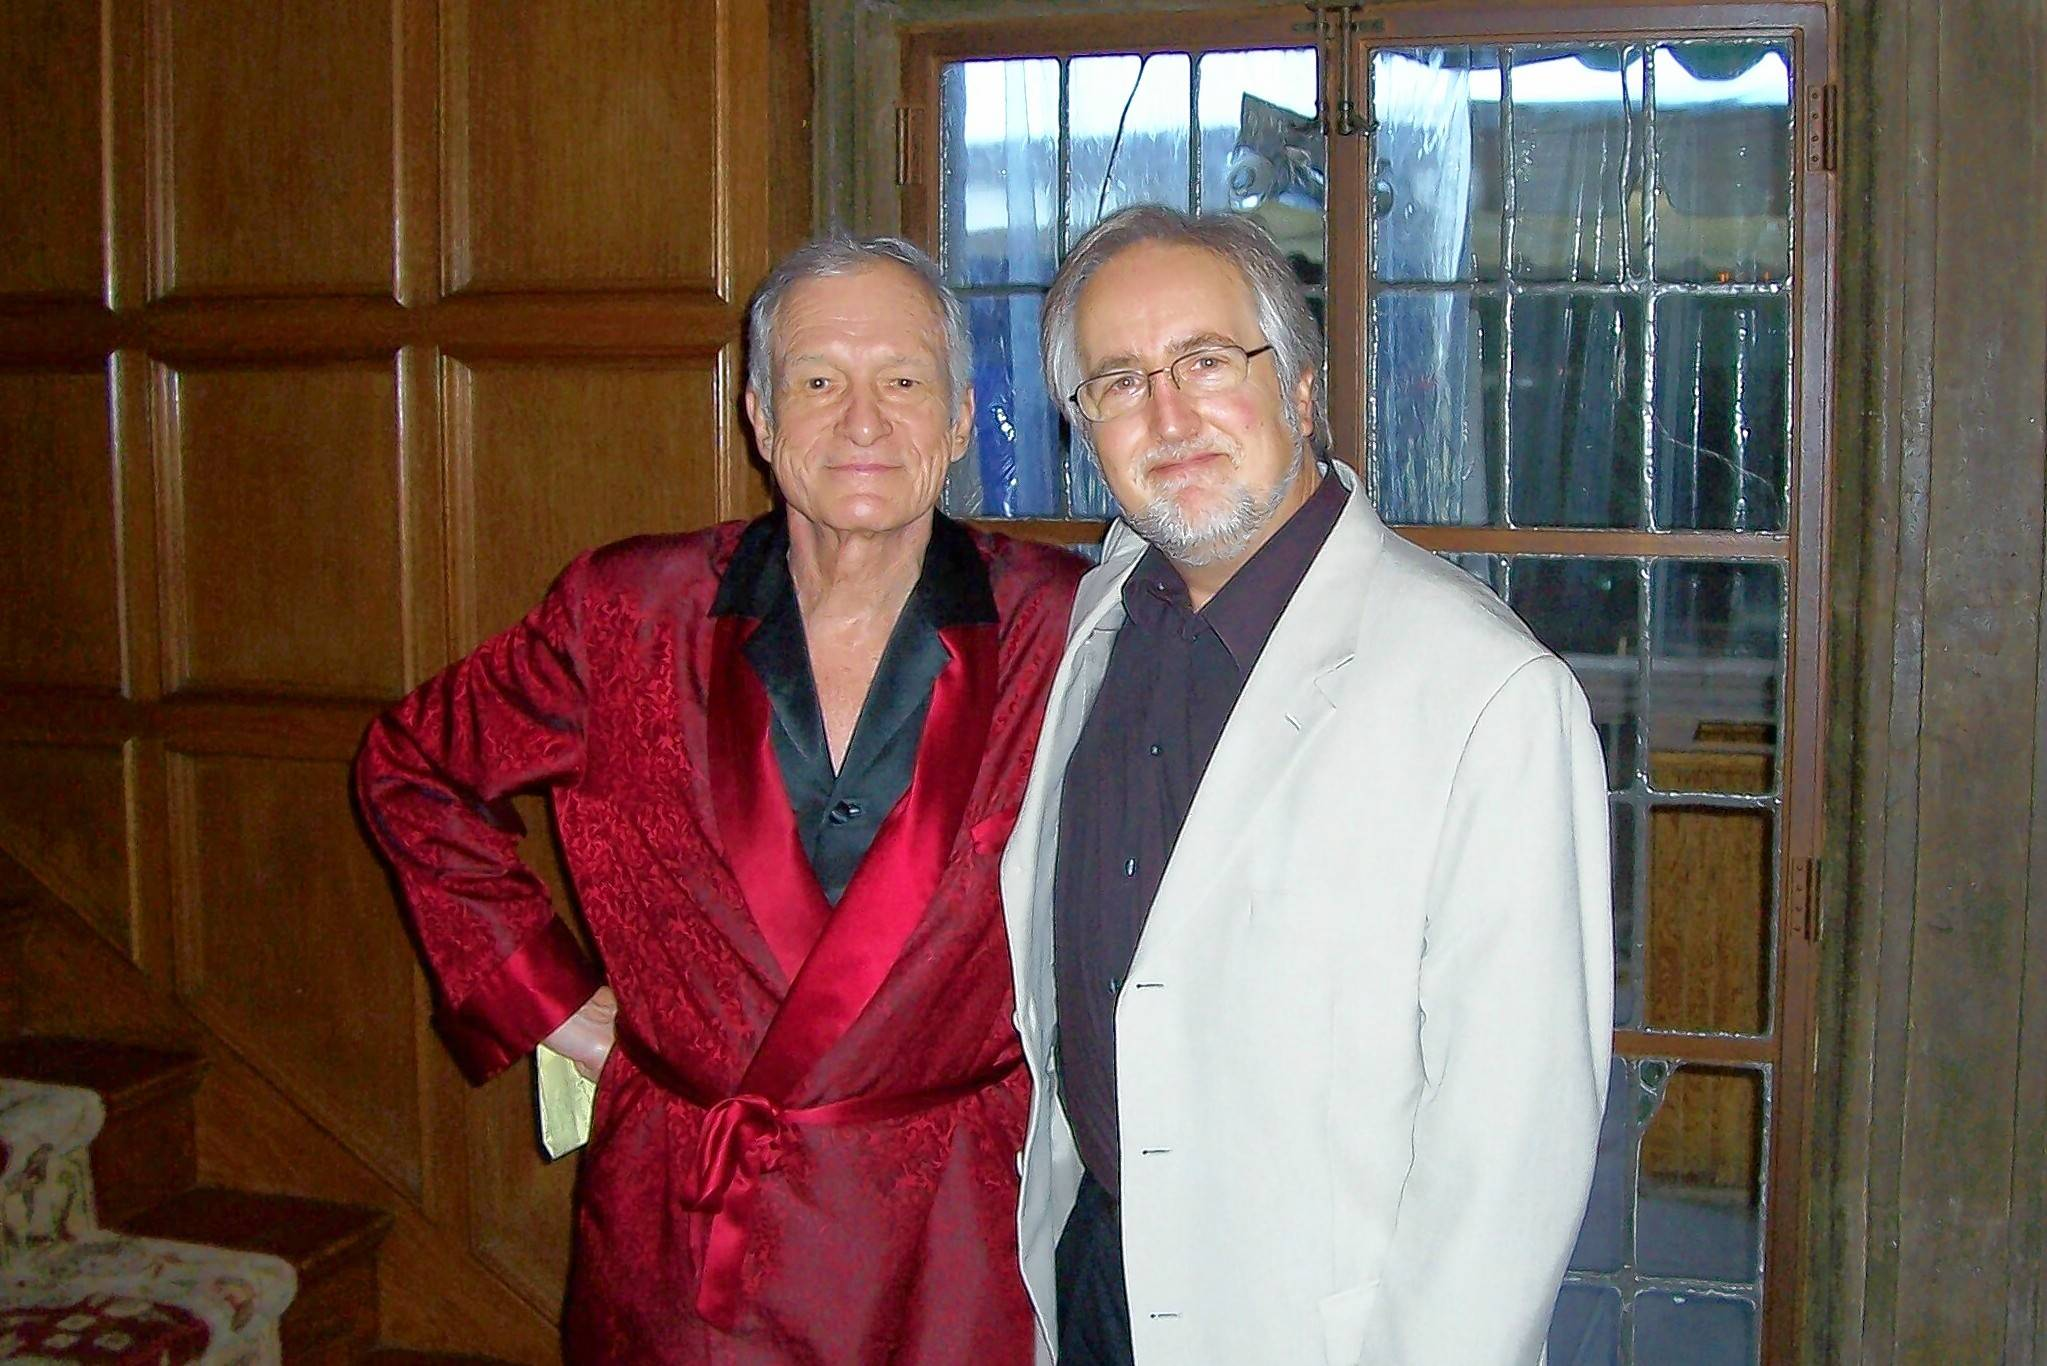 Hugh Hefner and James Bond novelist Raymond Benson of Buffalo Grove bonded over their interest in Ian Fleming's 007 for more two decades. They are in the Playboy Mansion West in this 2010 photograph.